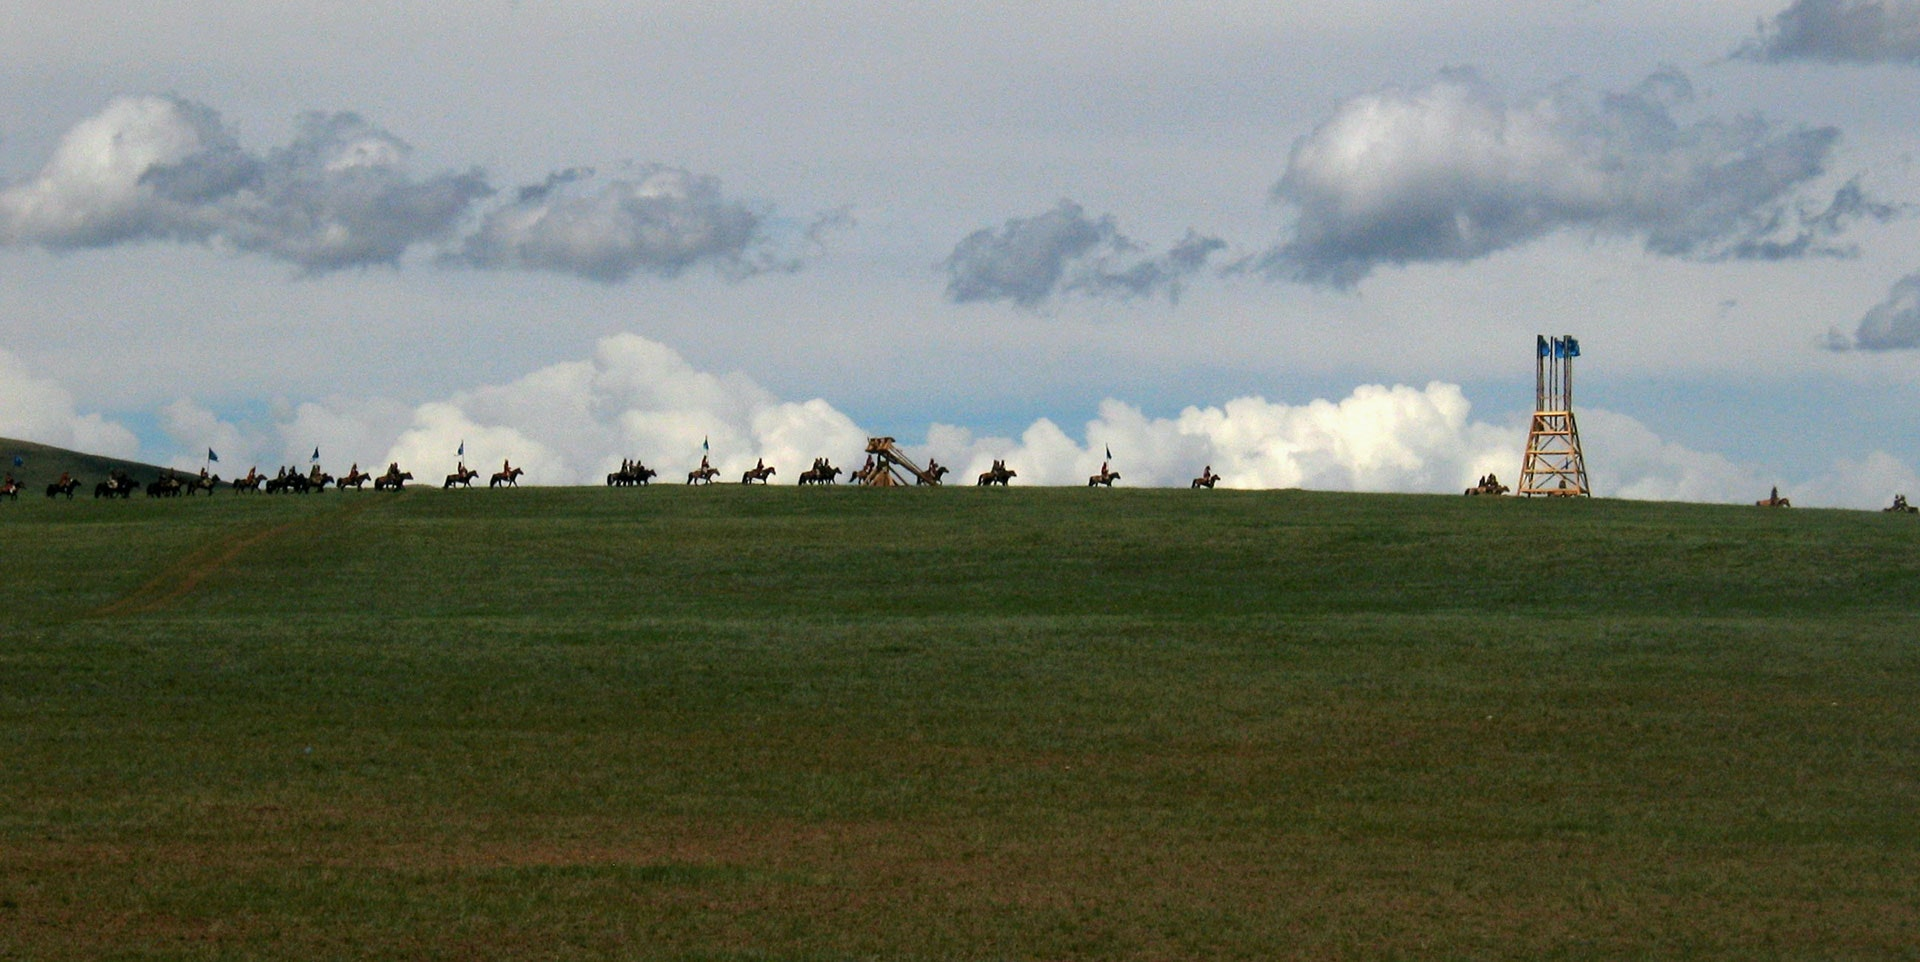 Reenactment of a Mongol military movement